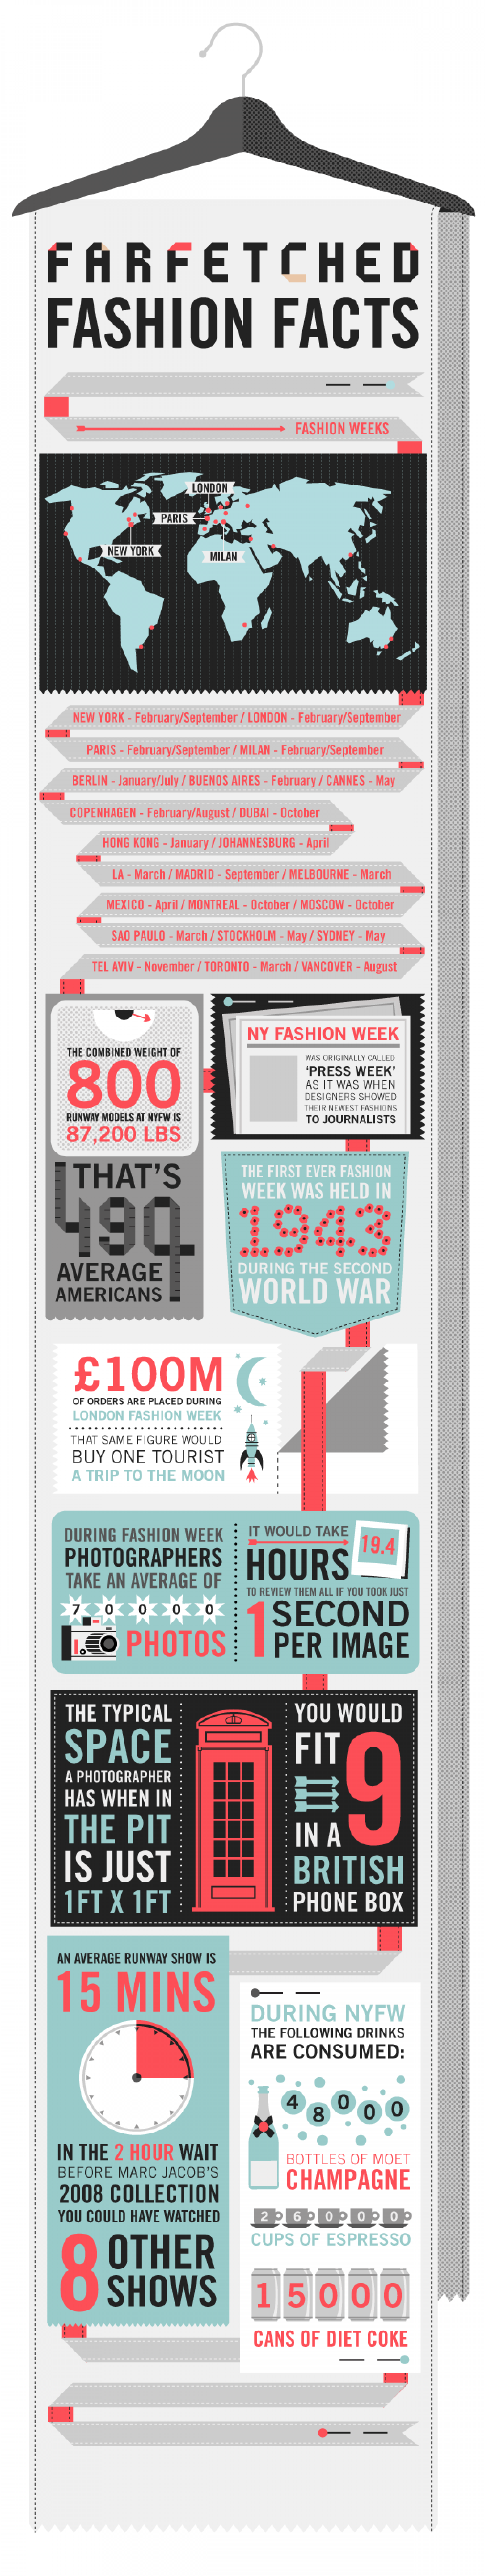 Farfetched Fashion Week Facts Infographic